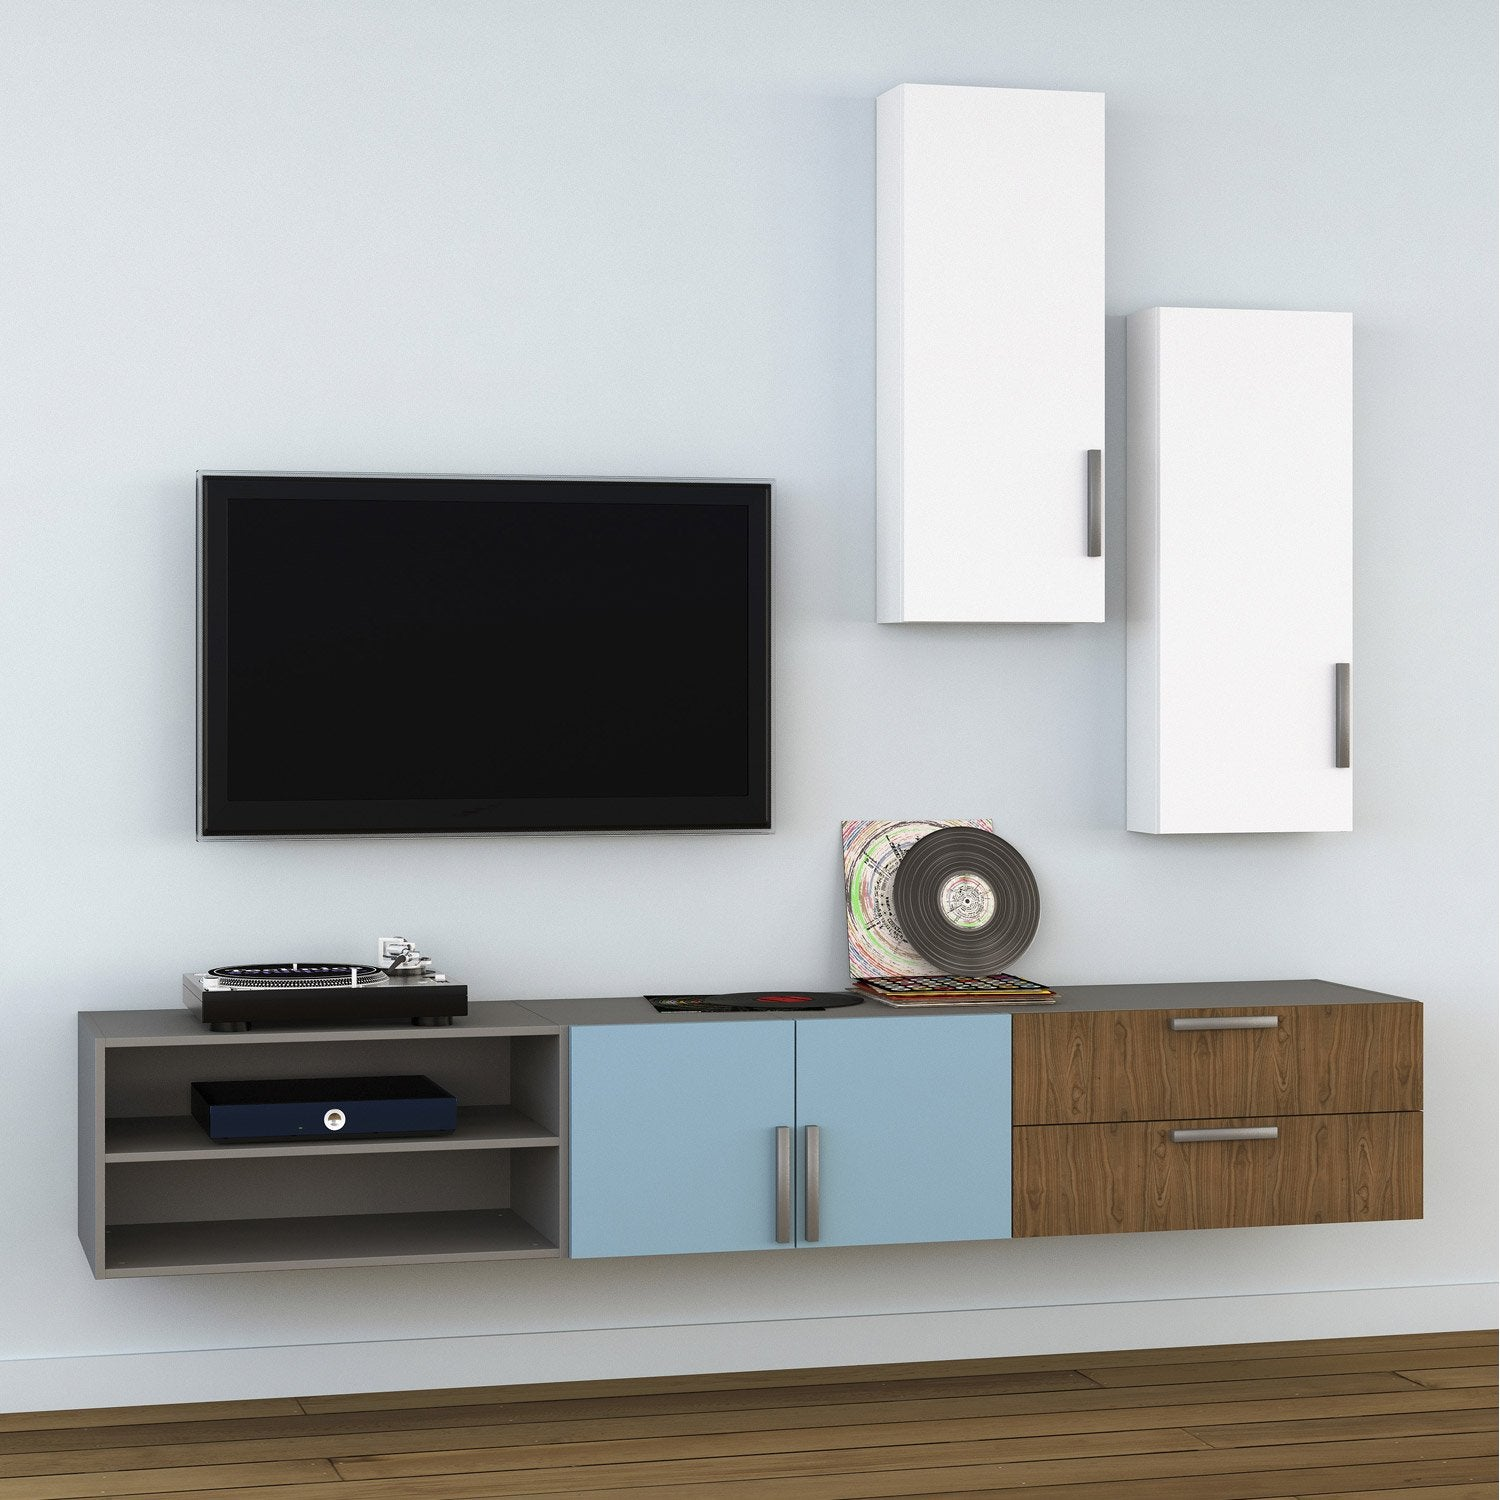 Meuble Tv Spaceo Home Effet Ch Ne Leroy Merlin # Amenagement Tele Meuble Suspendu